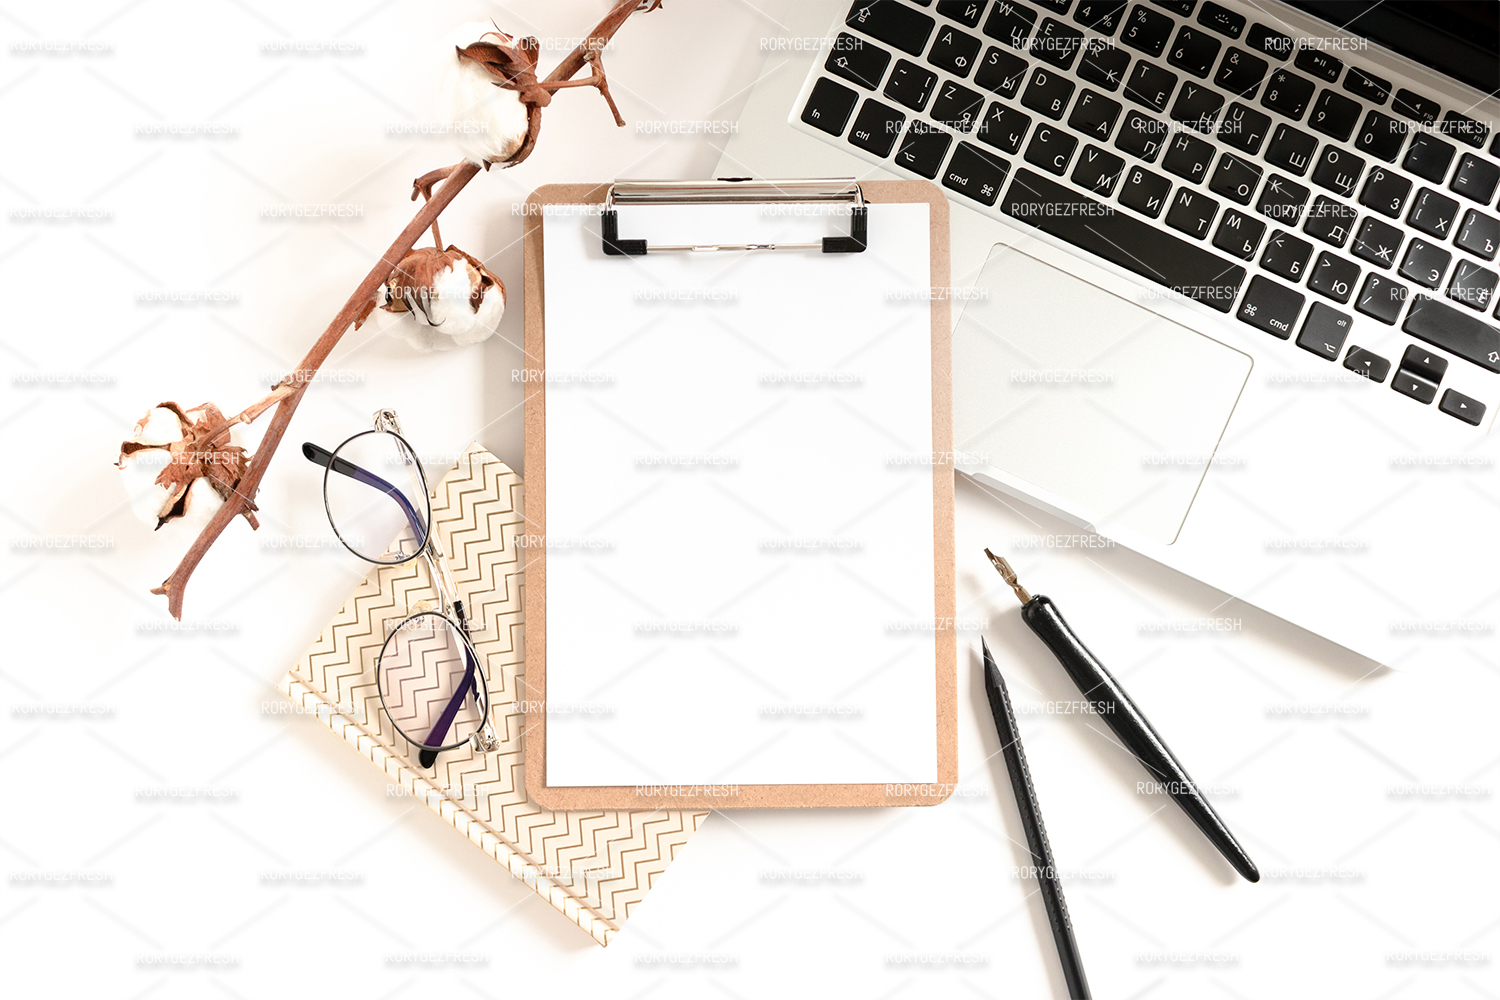 Workspace with clipboard mockup, laptop, glasses, notepads example image 1